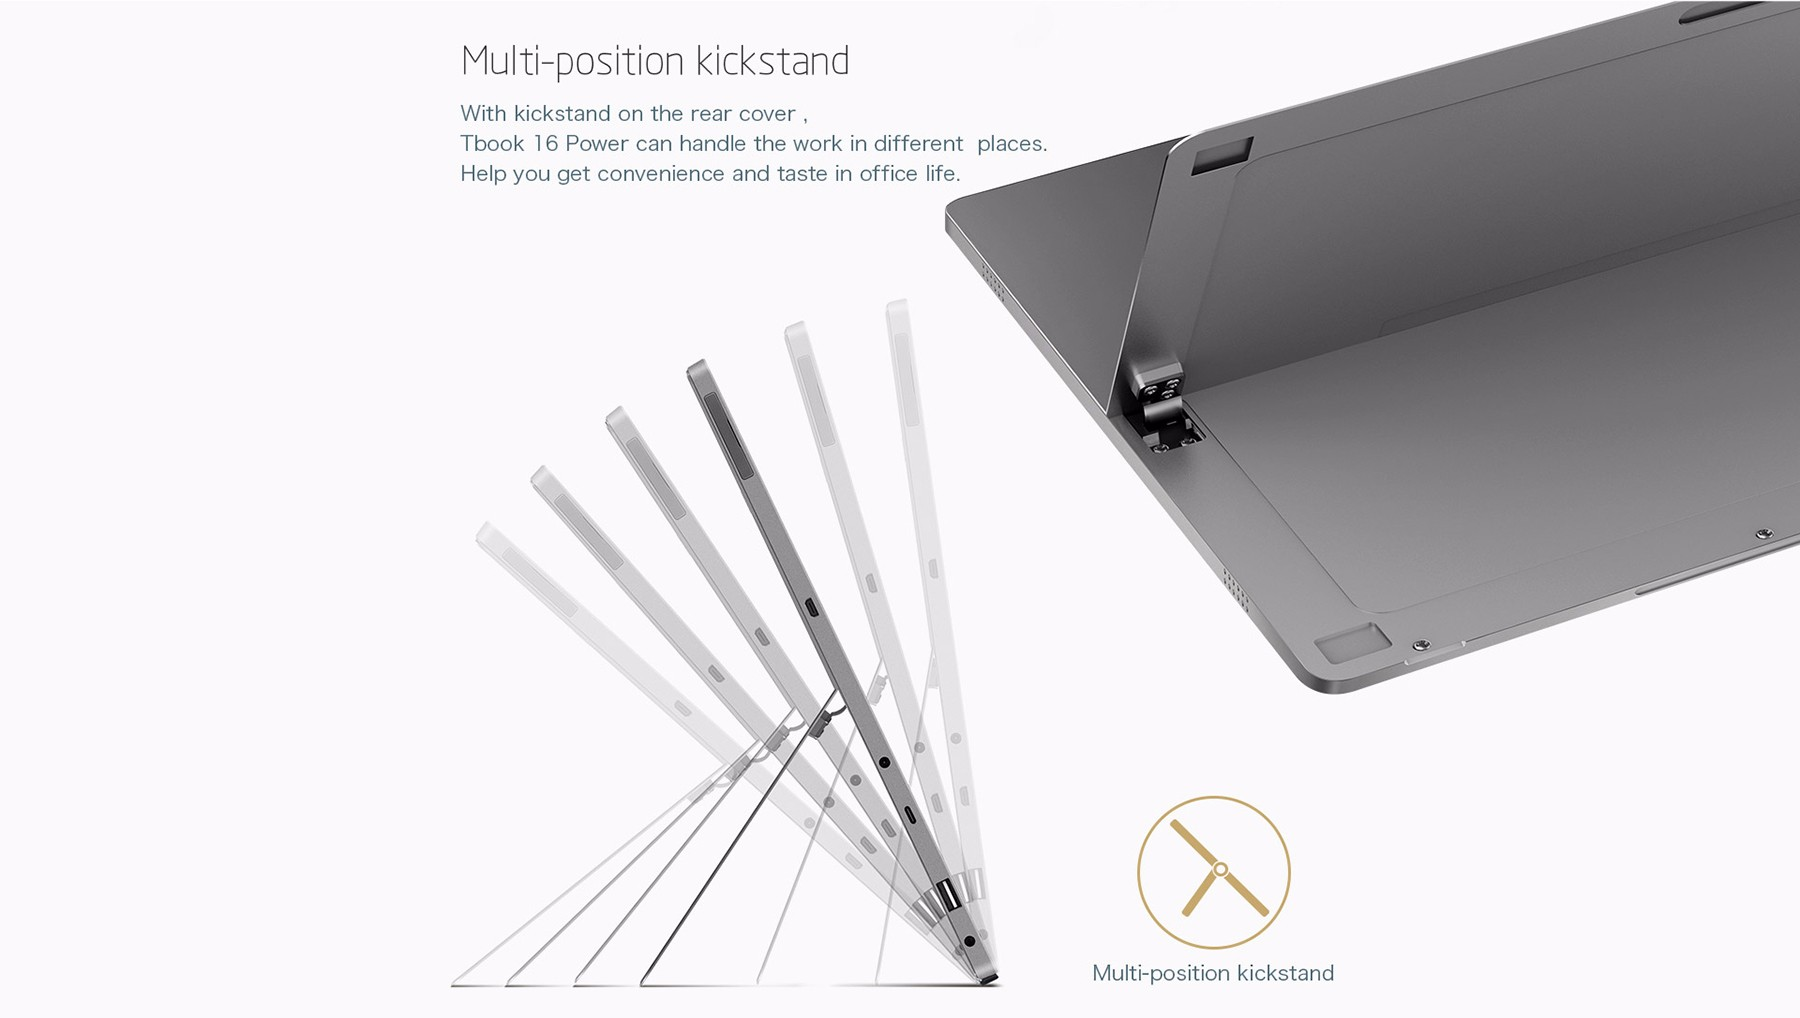 Teclast Tbook 16 Power Tablet PC Windows 10 + Android 6.0 11.6 inch IPS Screen Intel Atom x7-Z8750 64bit Quad Core 1.6GHz 8GB RAM 64GB ROM Cameras OTG